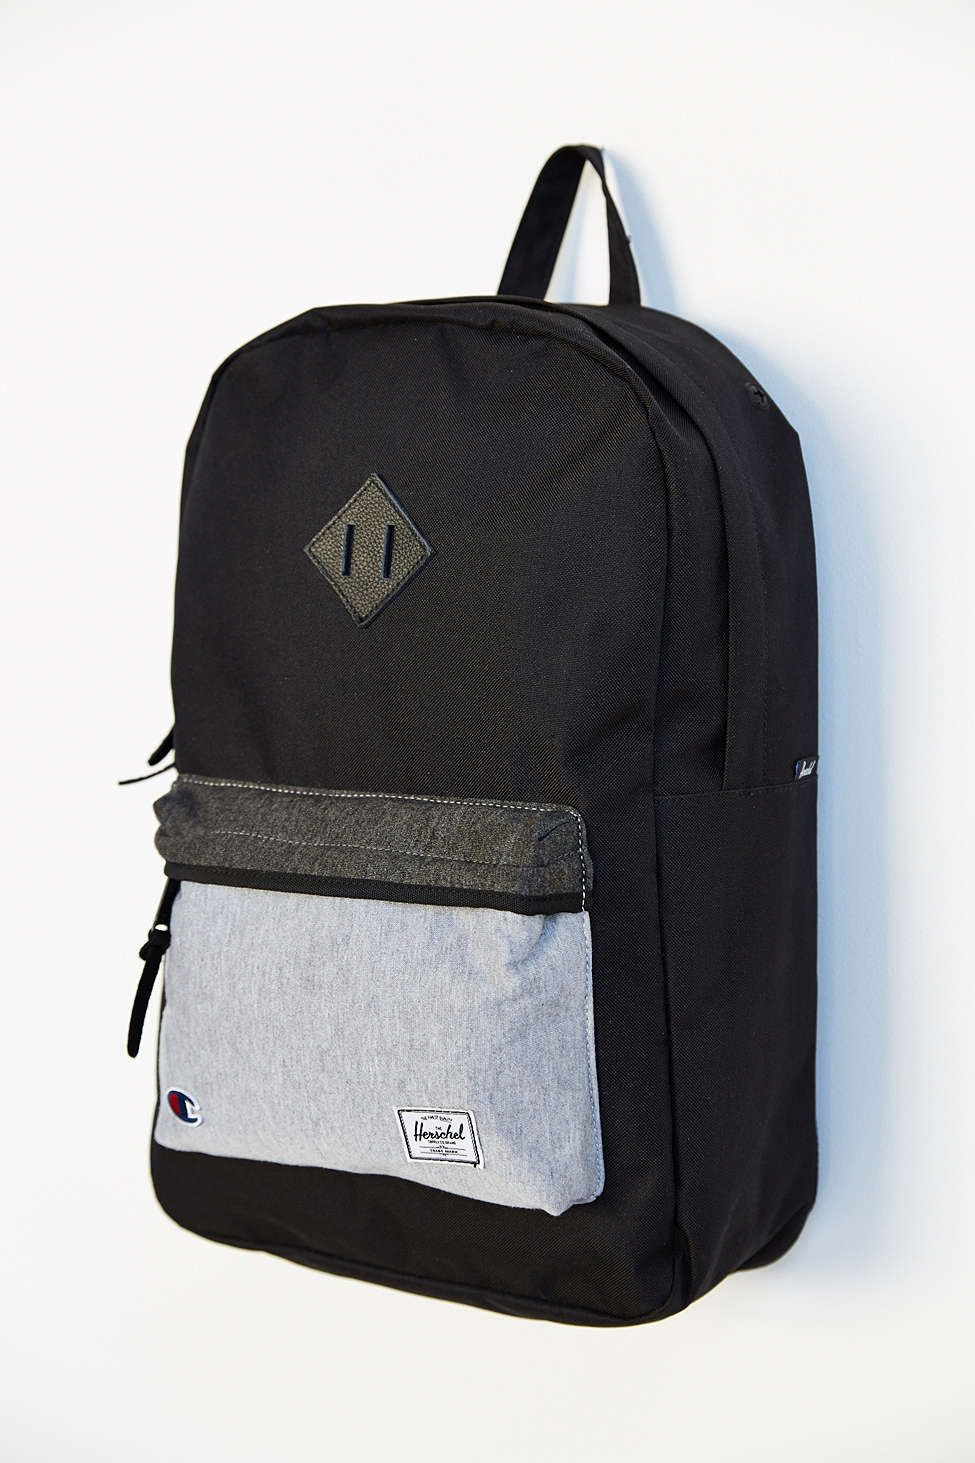 579555ca48e Herschel Supply Co. x Champion